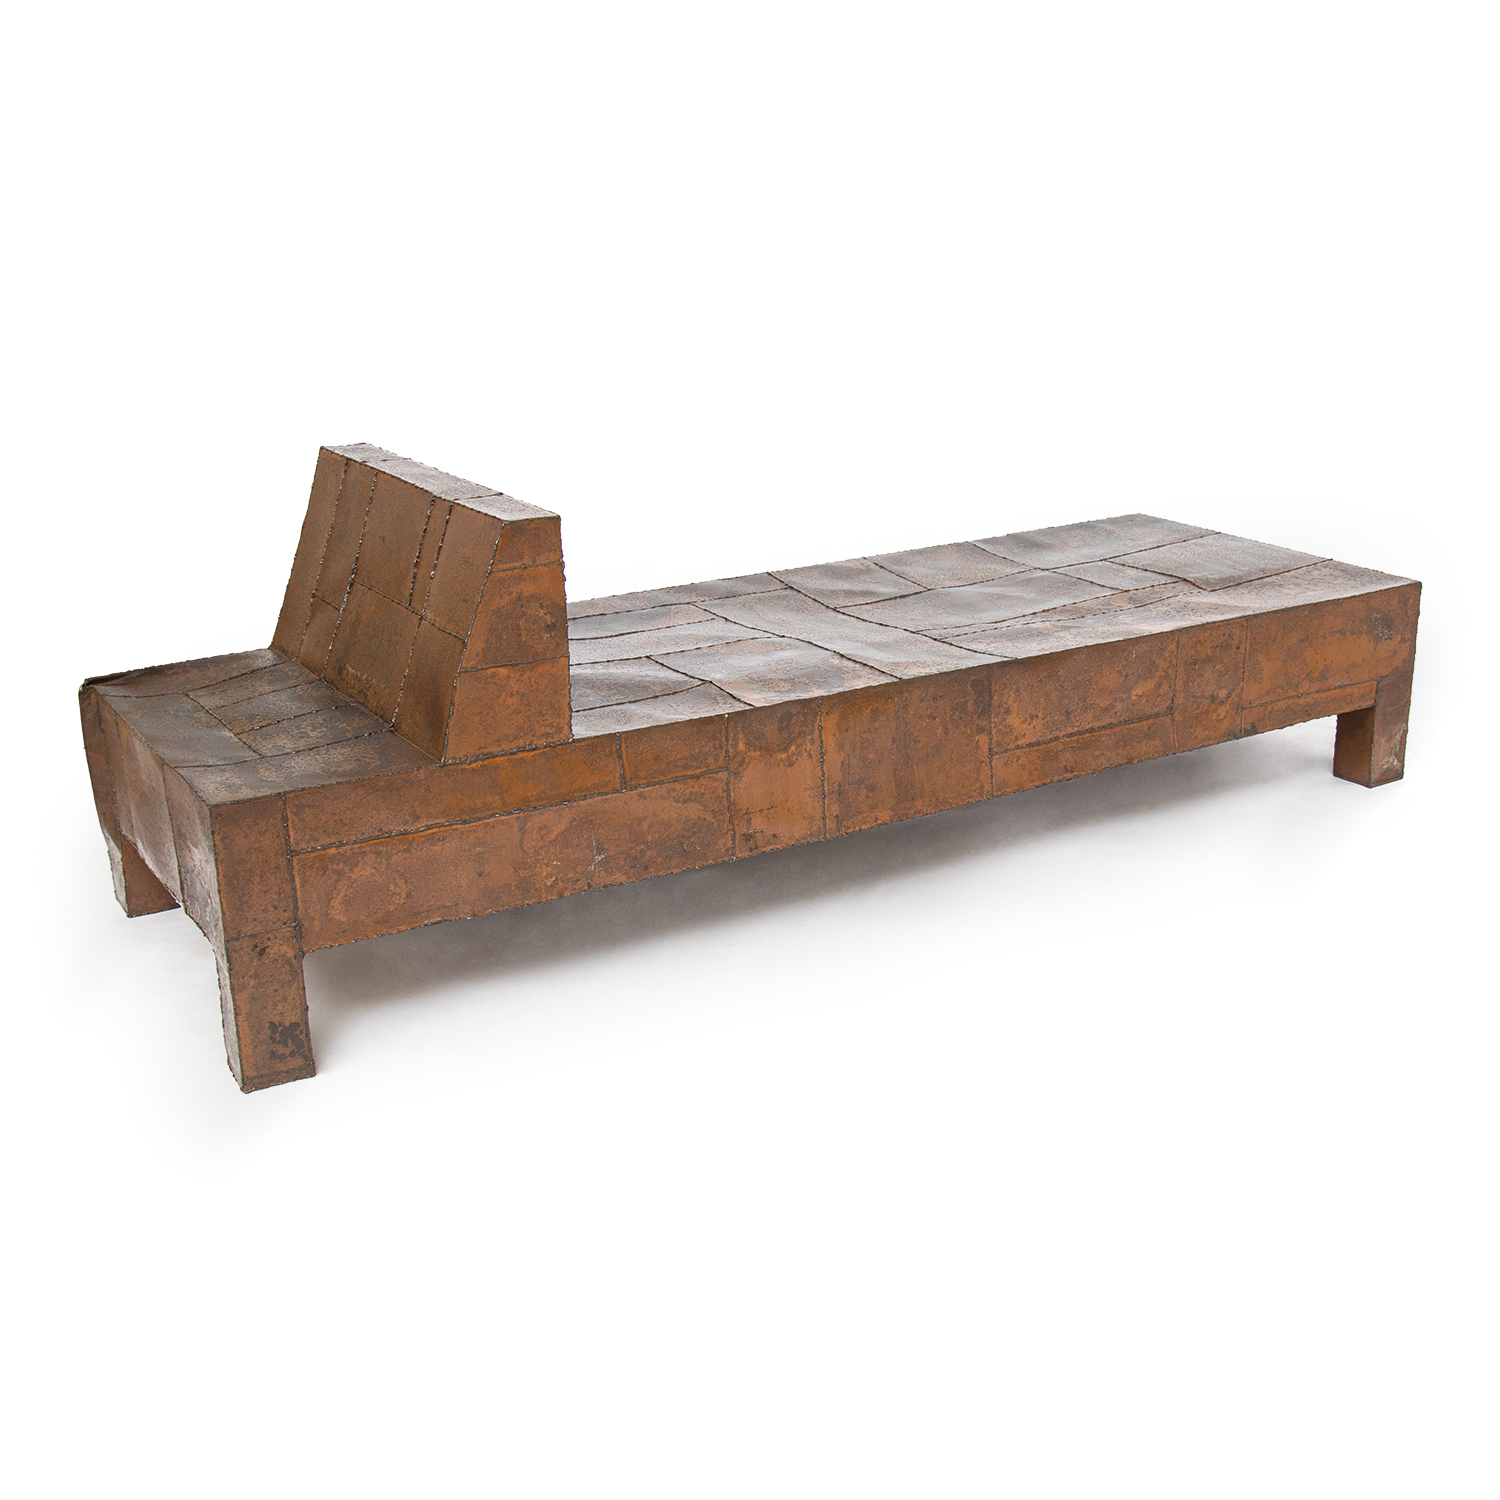 02_Welded_sofa_perspective01_THUMBNAIL-2